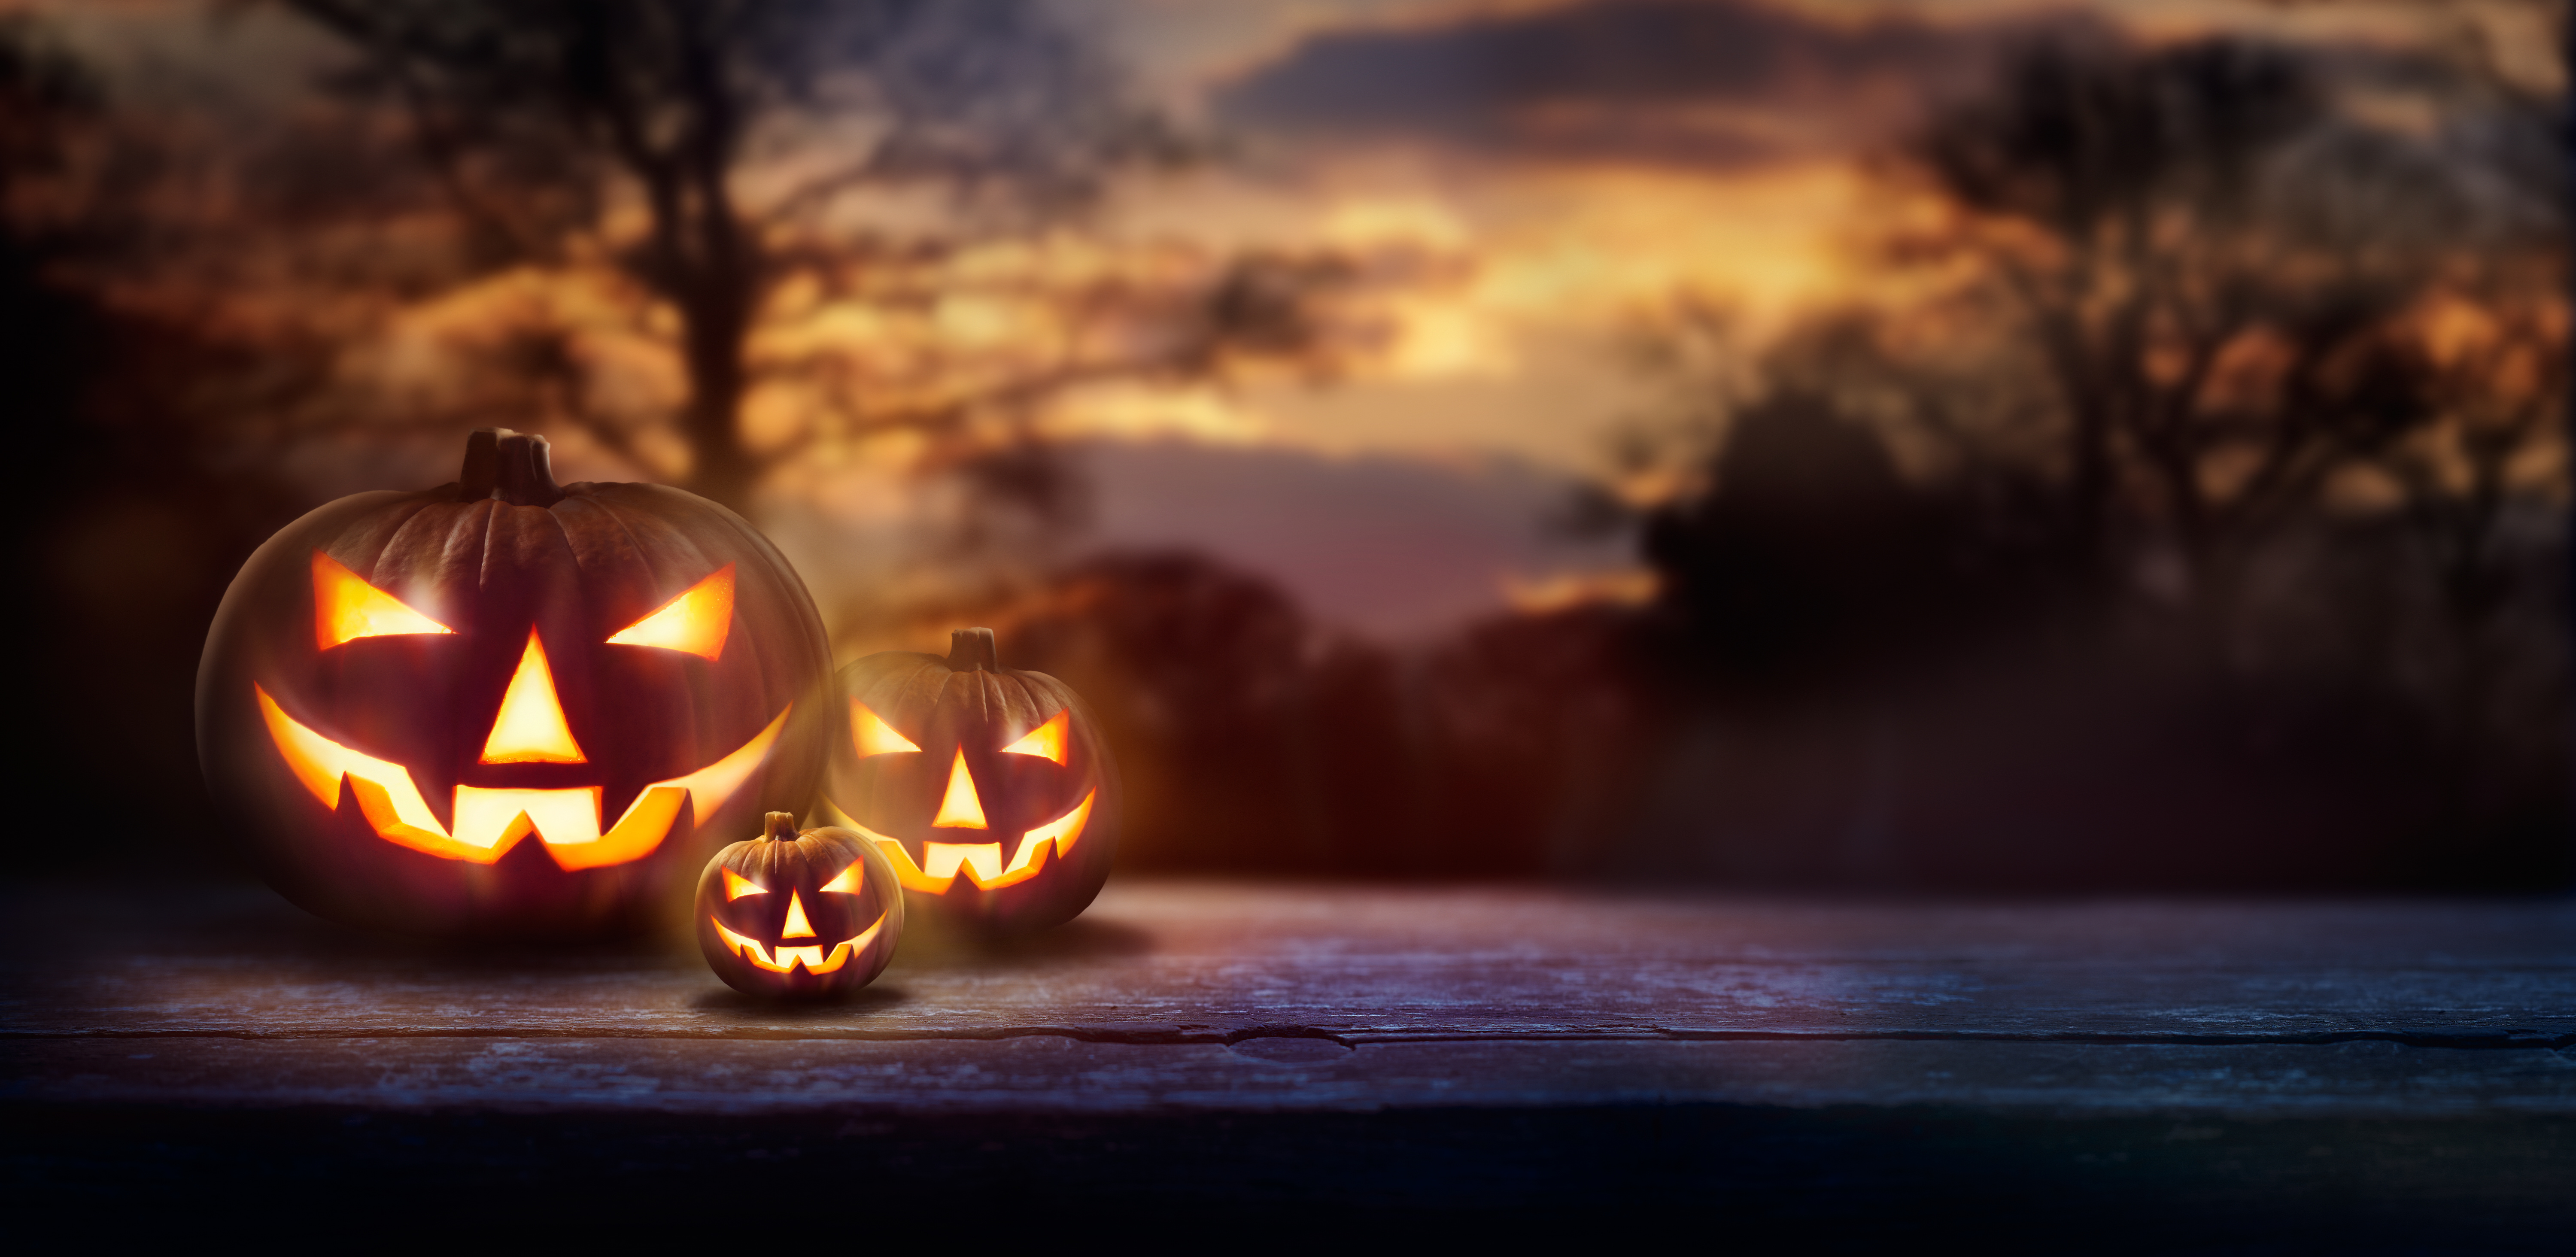 Halloween And Compliance The Compliance And Ethics Blog